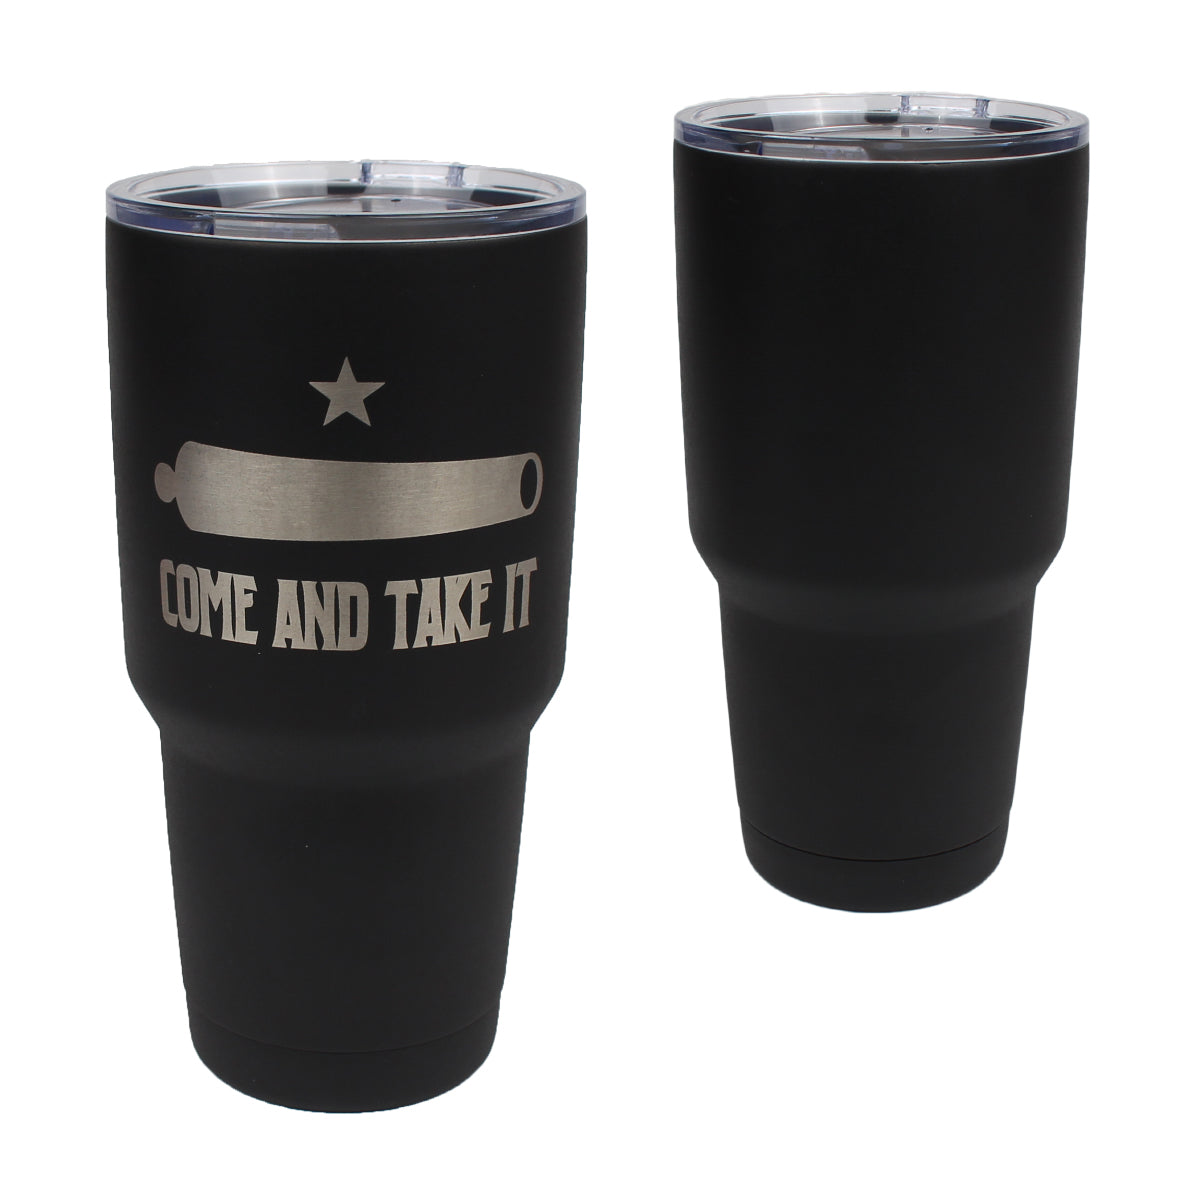 Come And Take It - Cannon - 30oz Tumbler -  - Tumbler - Pipe Hitters Union